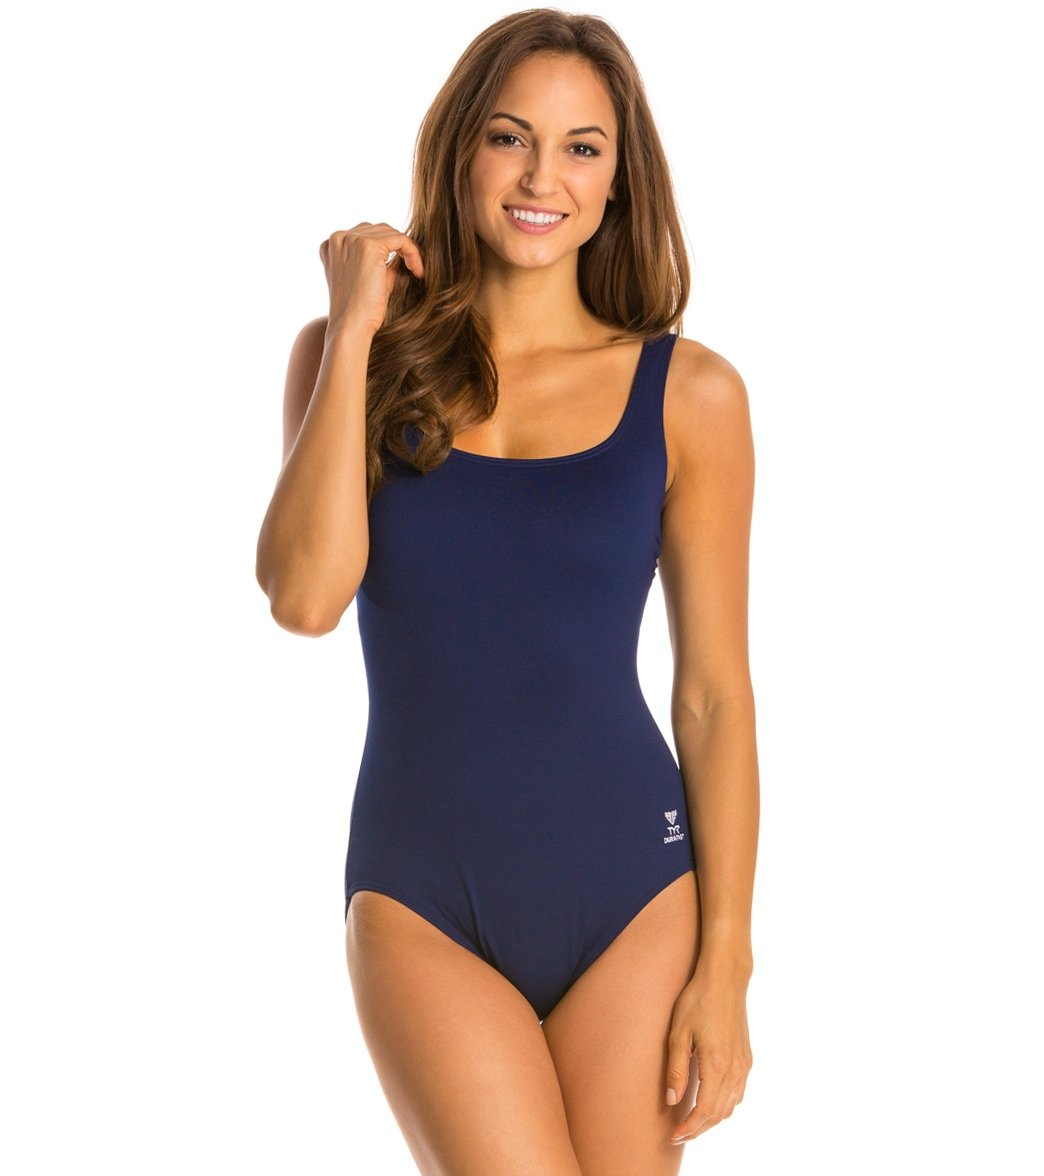 3f9fa9792f8f2 TYR Solid Aqua Controlfit One Piece Swimsuit